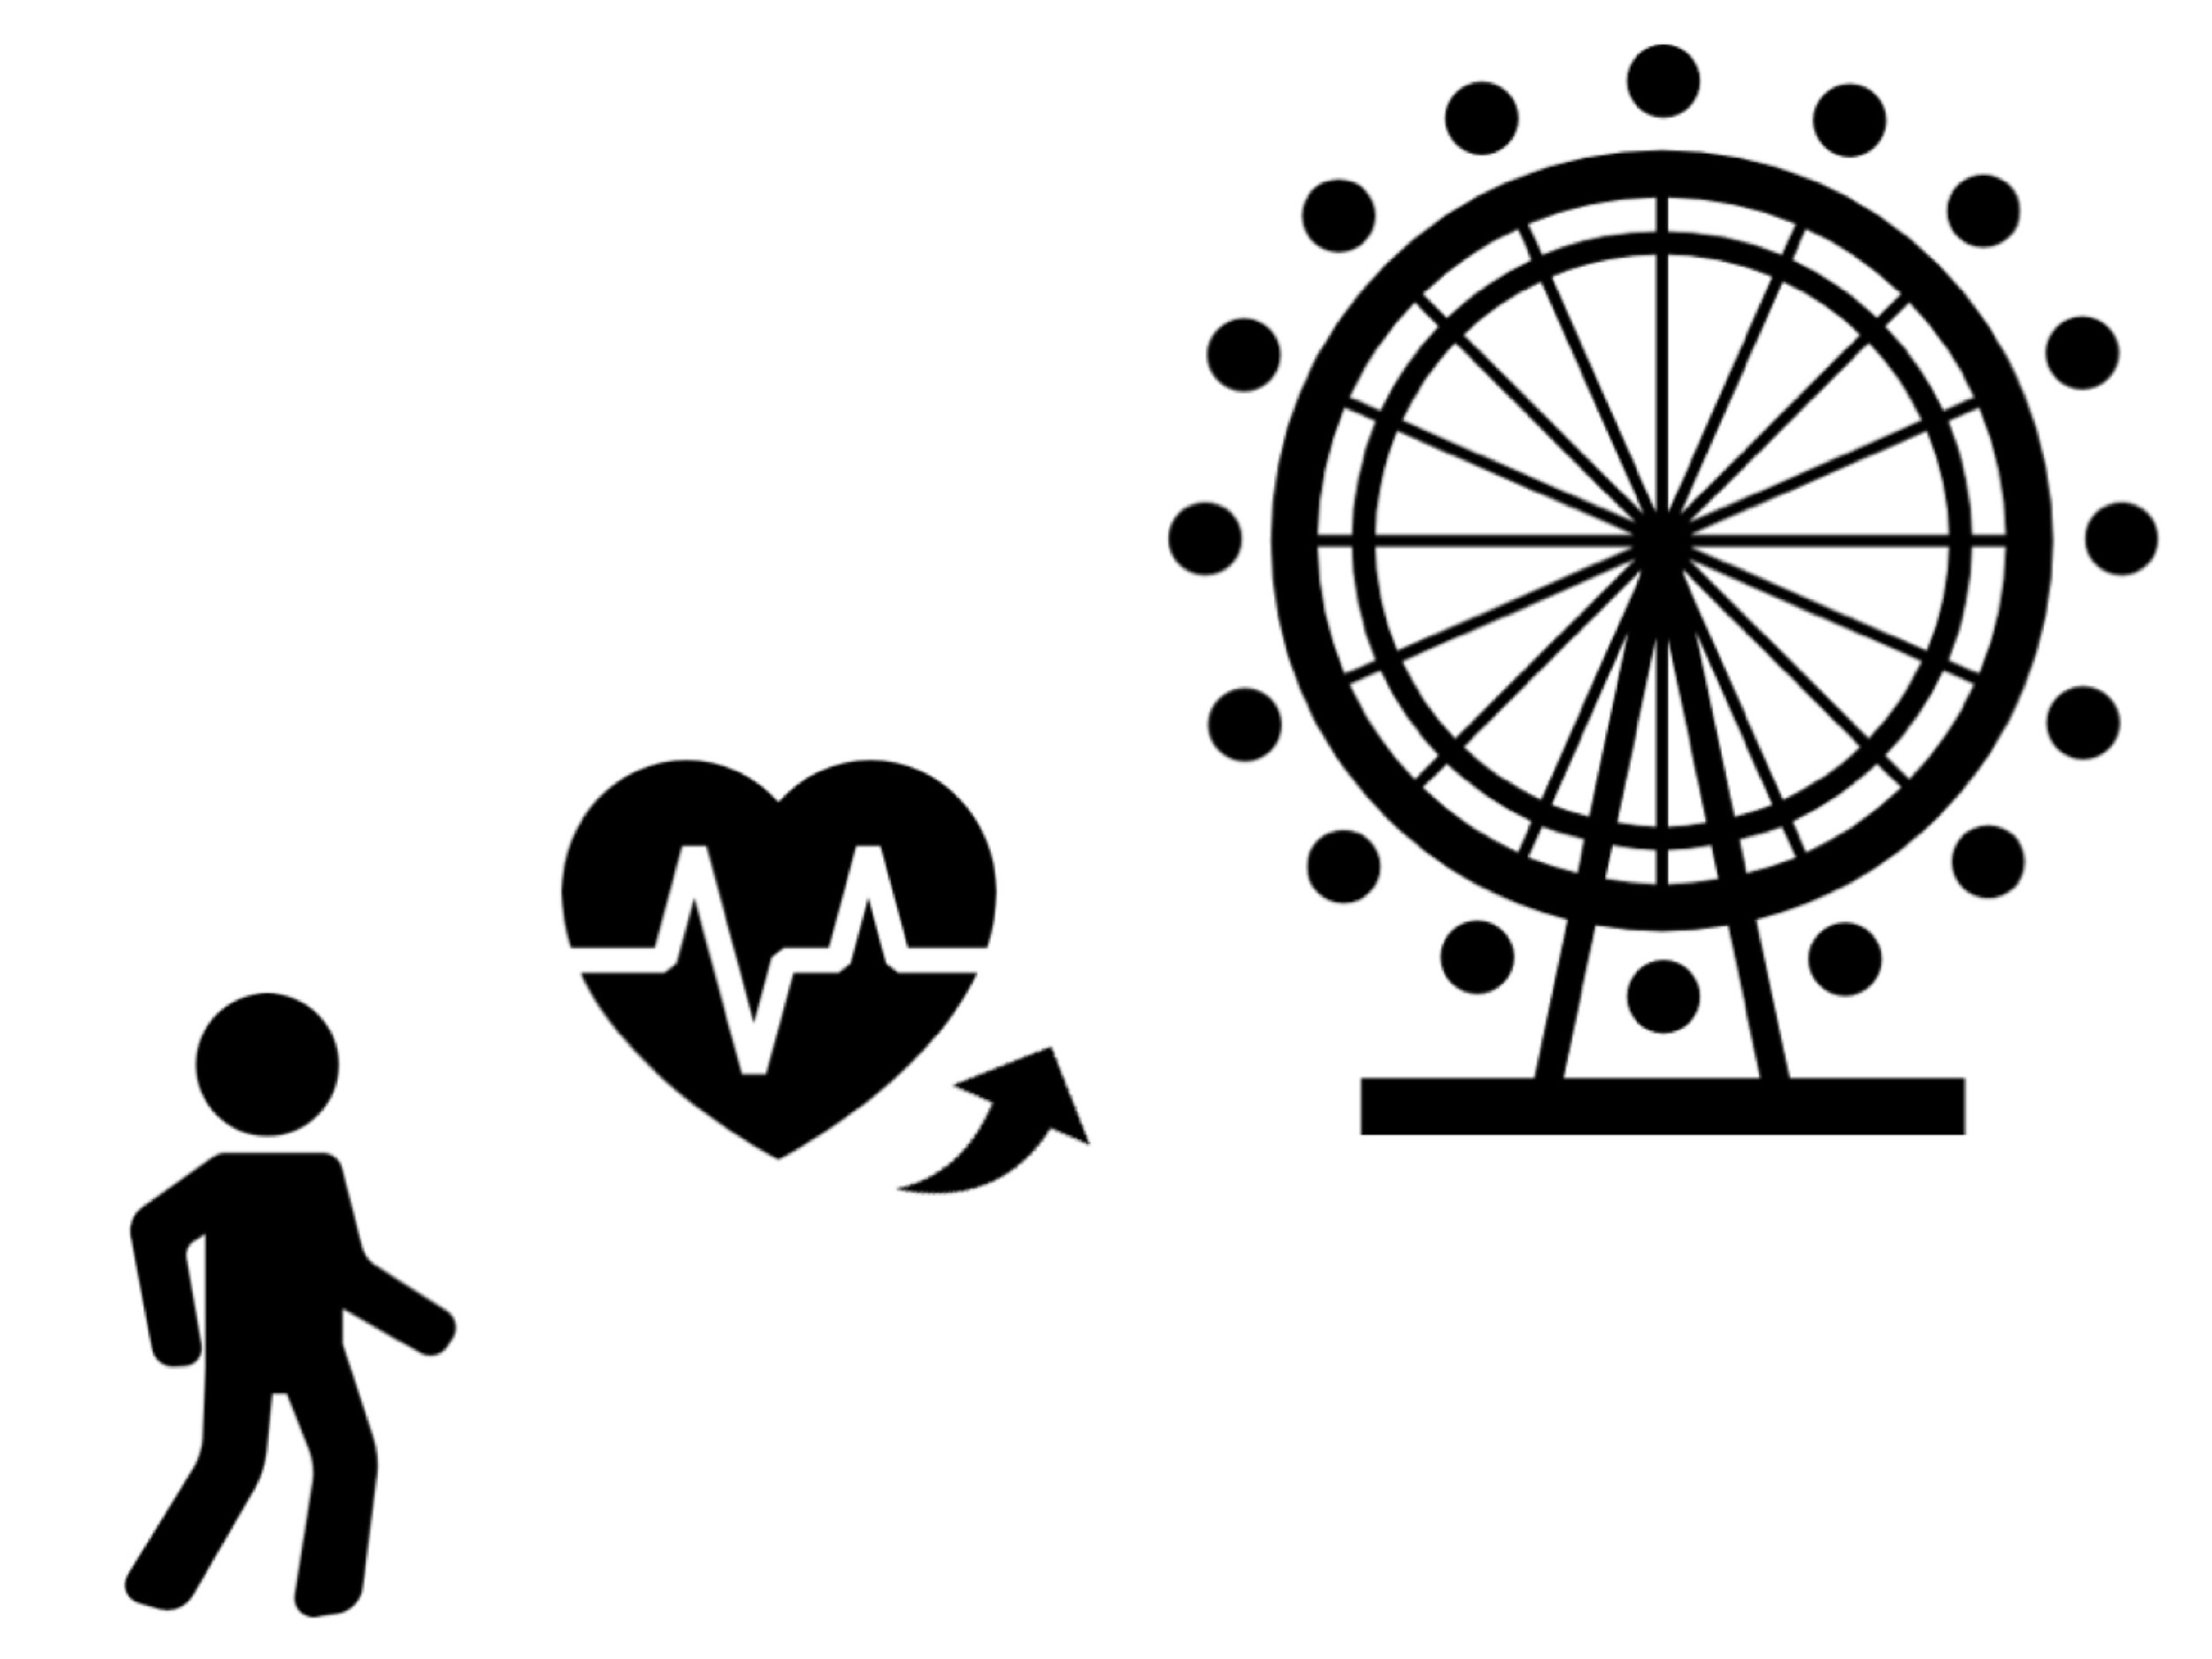 CONCEPT IMAGE OF TOURS. IF YOU SEE SOMETHING INTERESTING, YOUR HEART RATE IS INCREASED. WE TESTED THIS HYPOTHESIS AND CURRENT DATA SUPPORTED OUR HYPOTHESIS. CURRENTLY WE ARE WOKING ON DEVELOPING A PROTOTYPE FOR LARGE SCALE FIELDWORK EXPERIMENT.